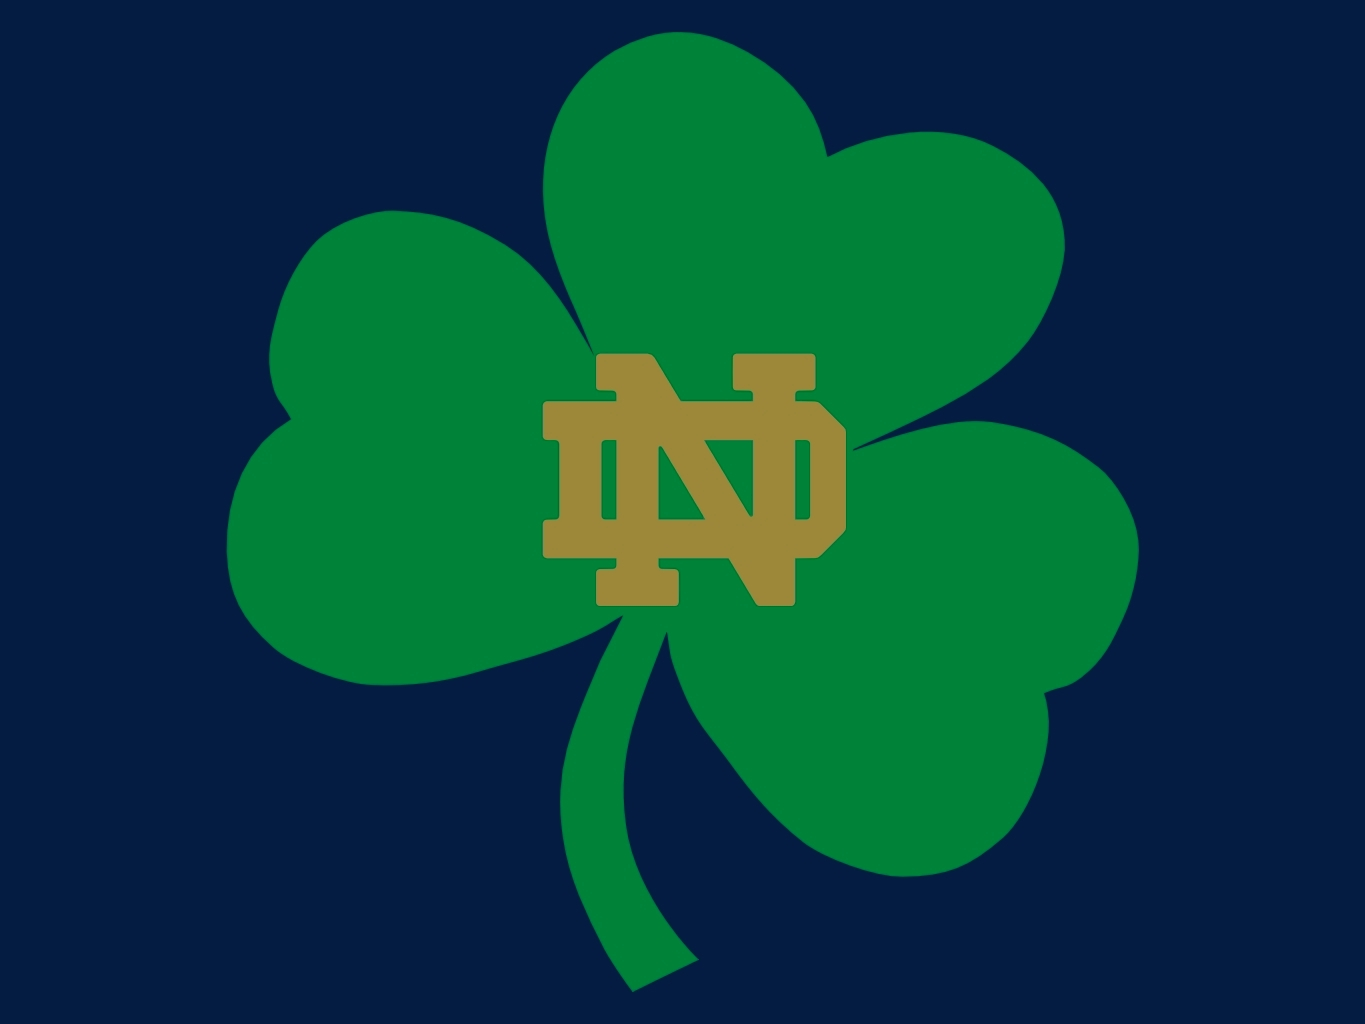 Irish Envy Notre Dame Football Discussion Outside The Lines The 1365x1024